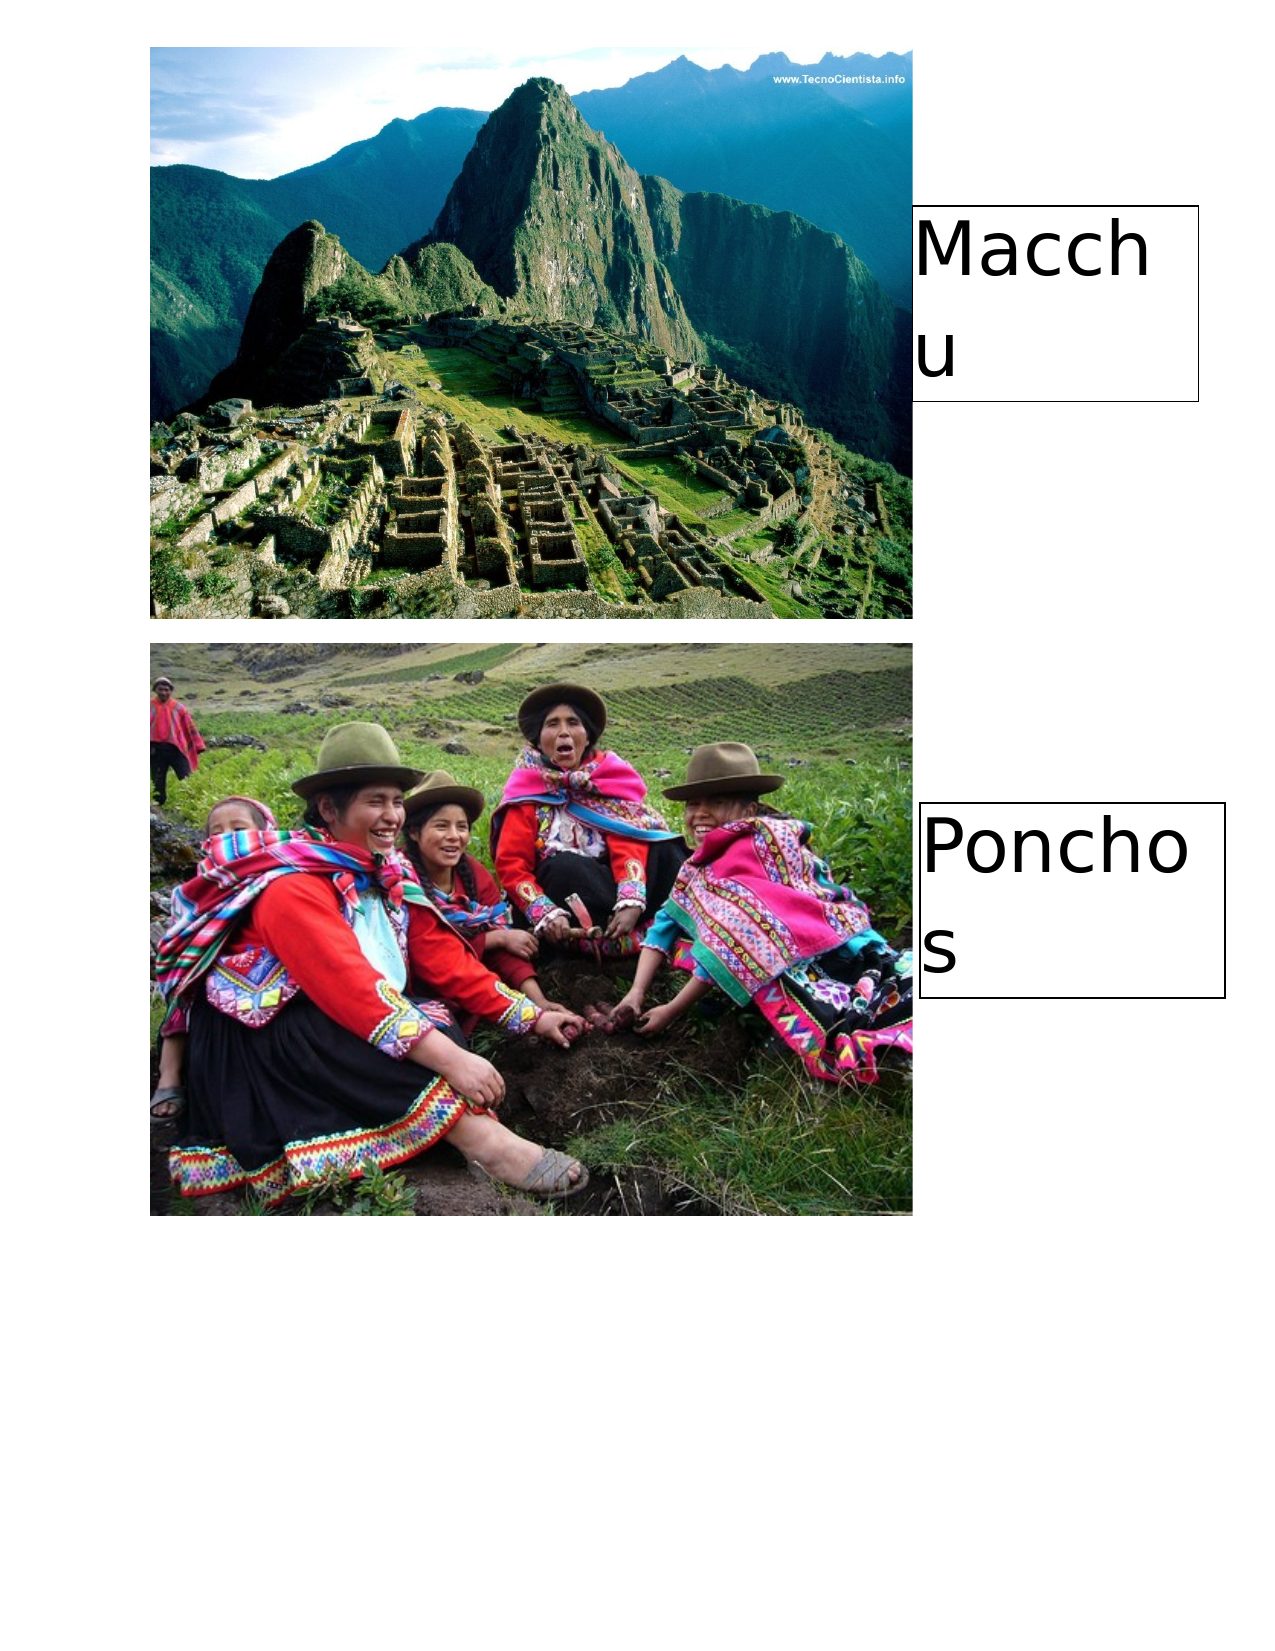 Peru Bulletin Board Resource Preview